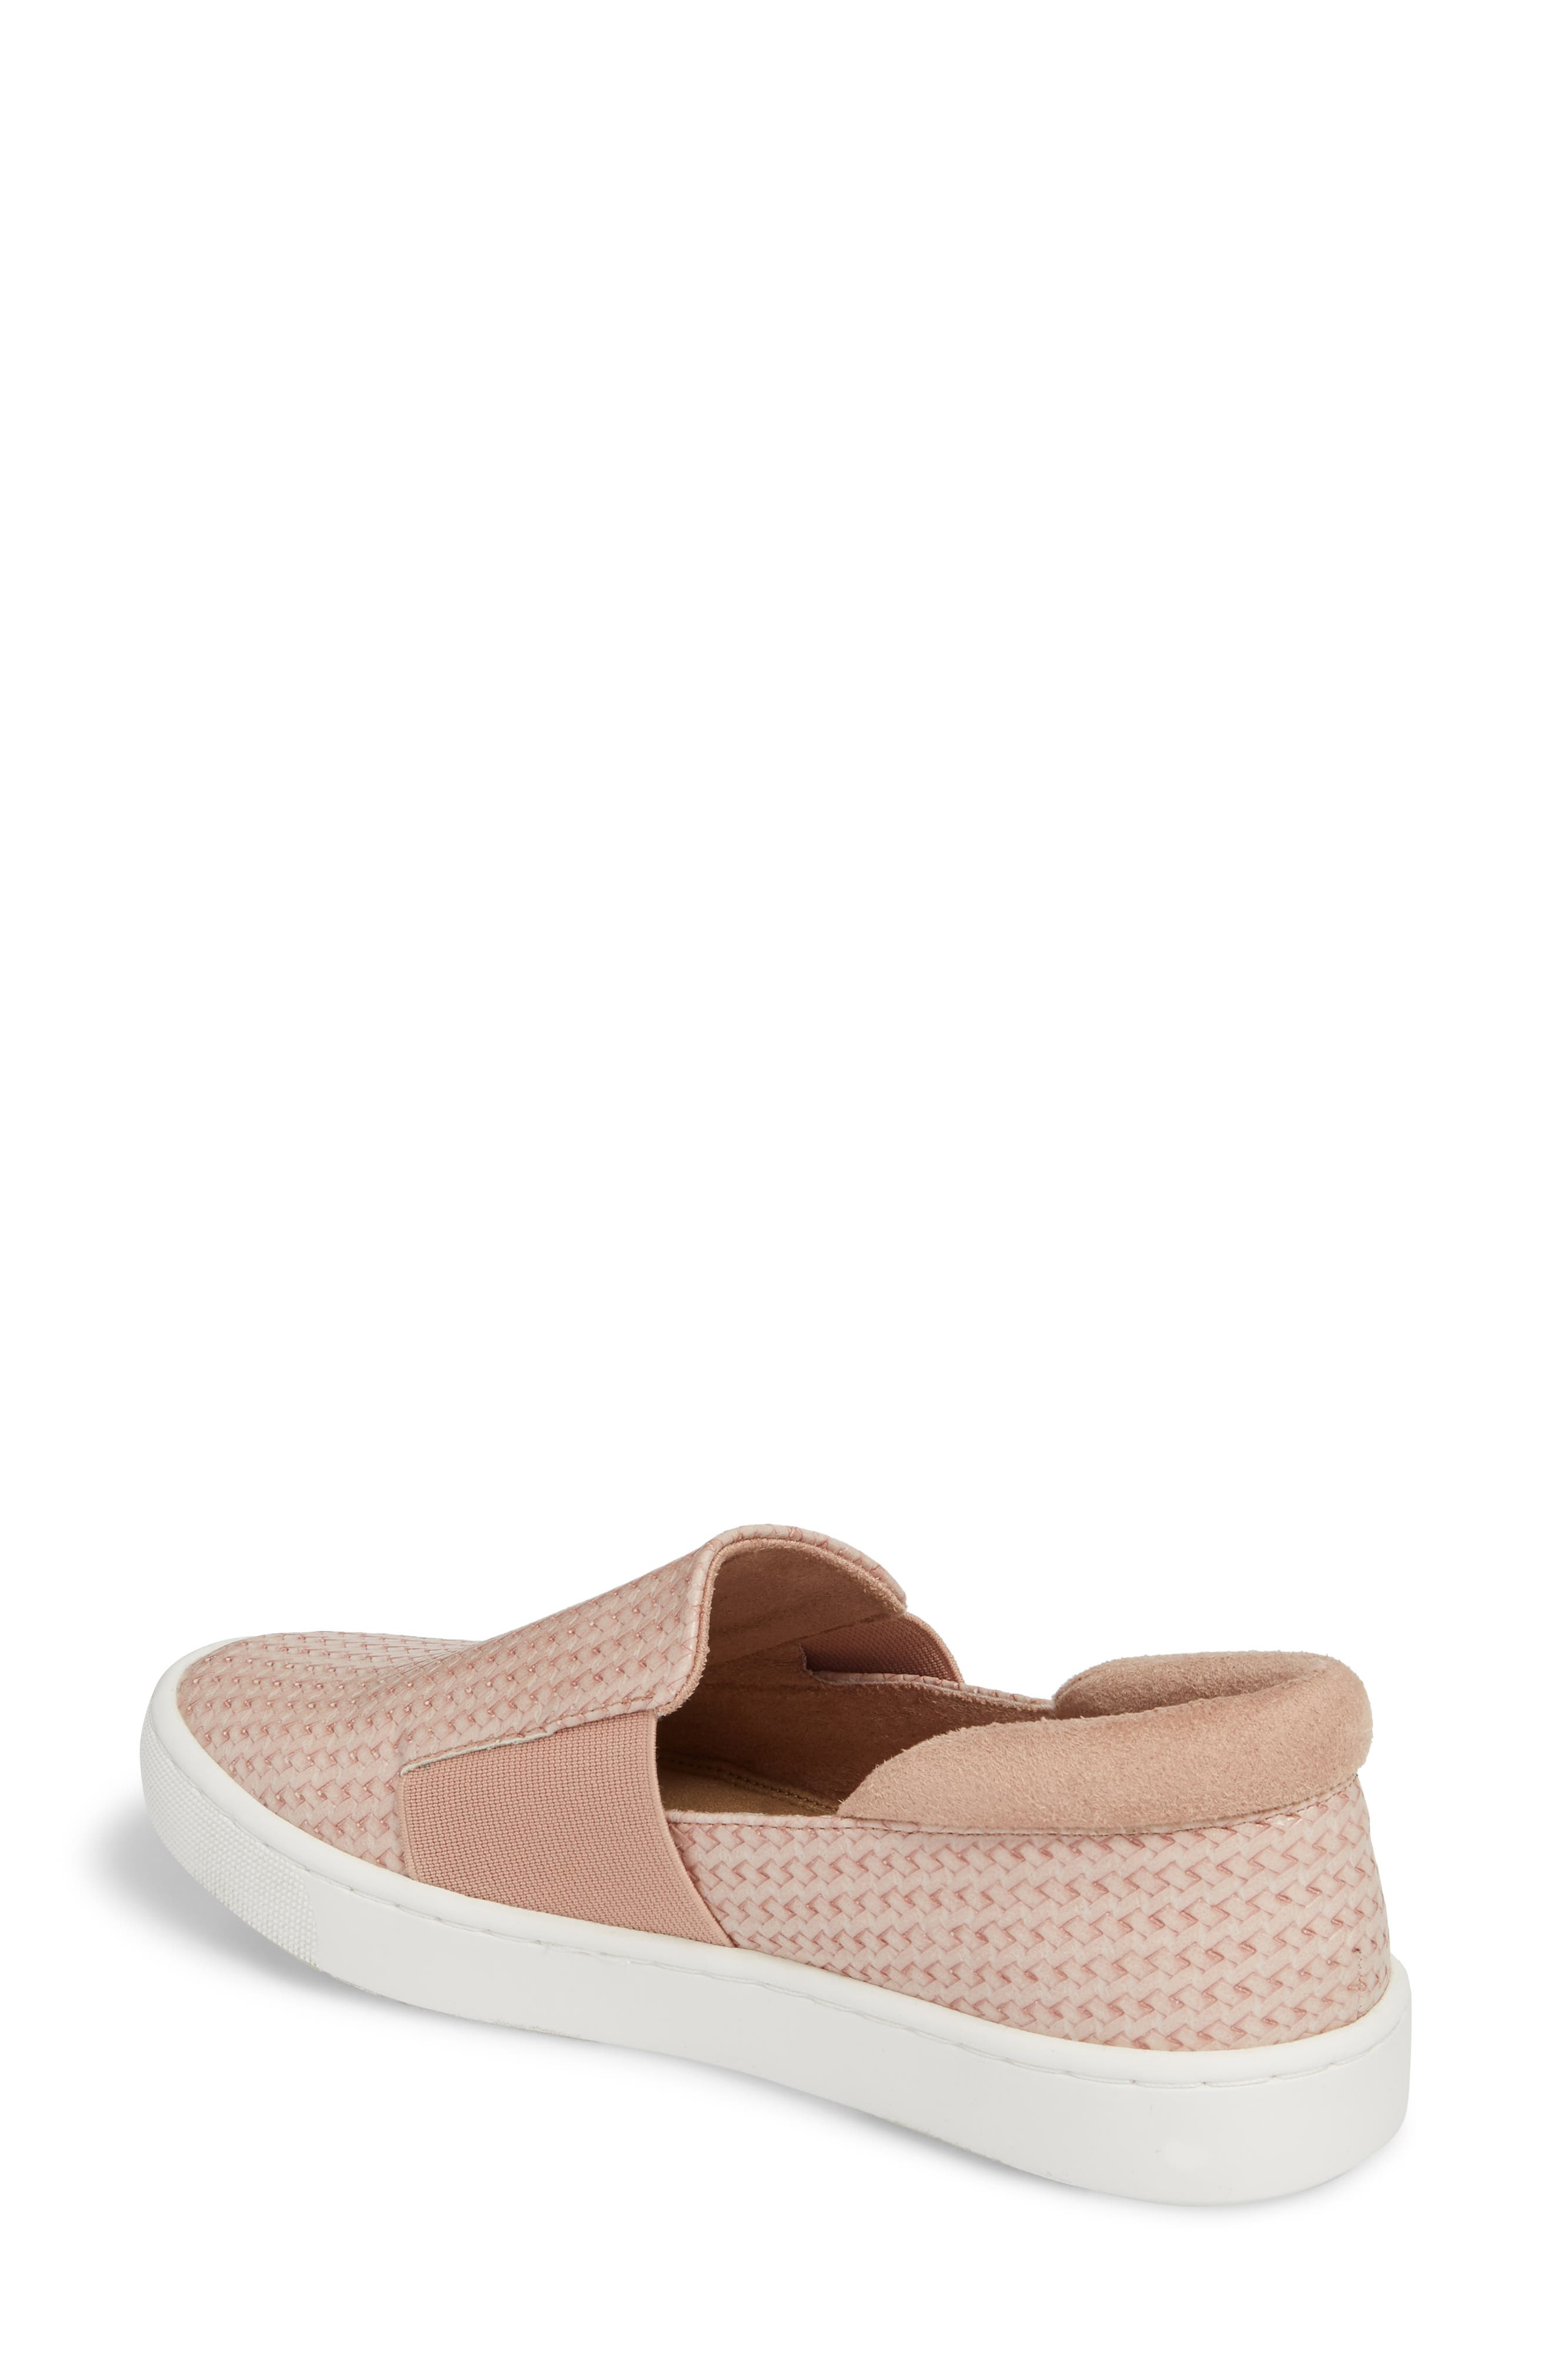 Ramp II Slip-On Sneaker,                             Alternate thumbnail 2, color,                             BLUSH FABRIC